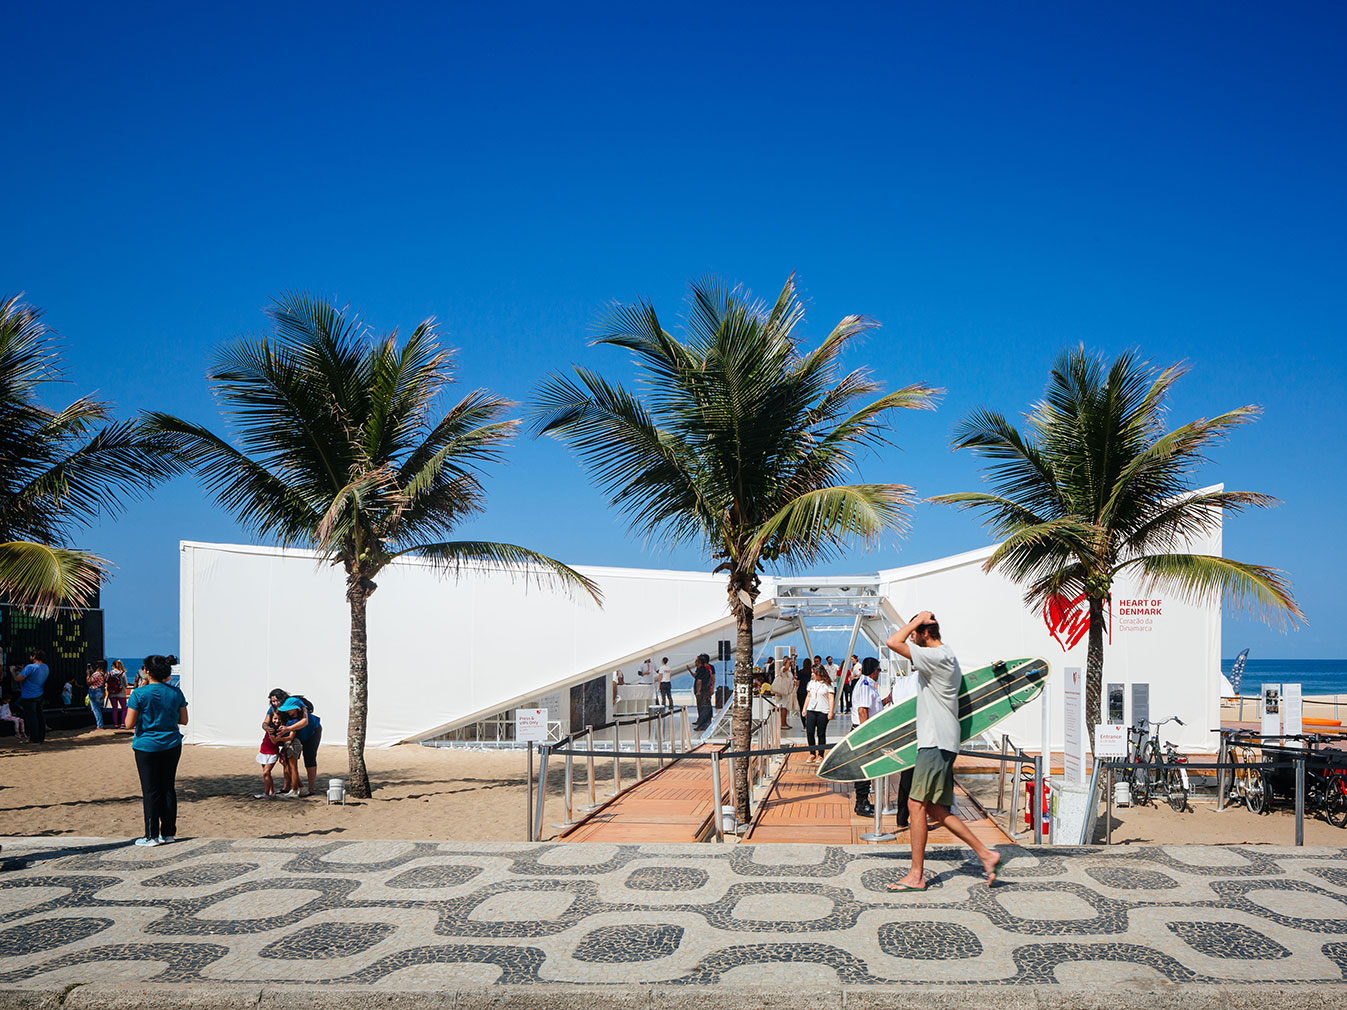 Denmark Pavilion at the Rio Olympic Games